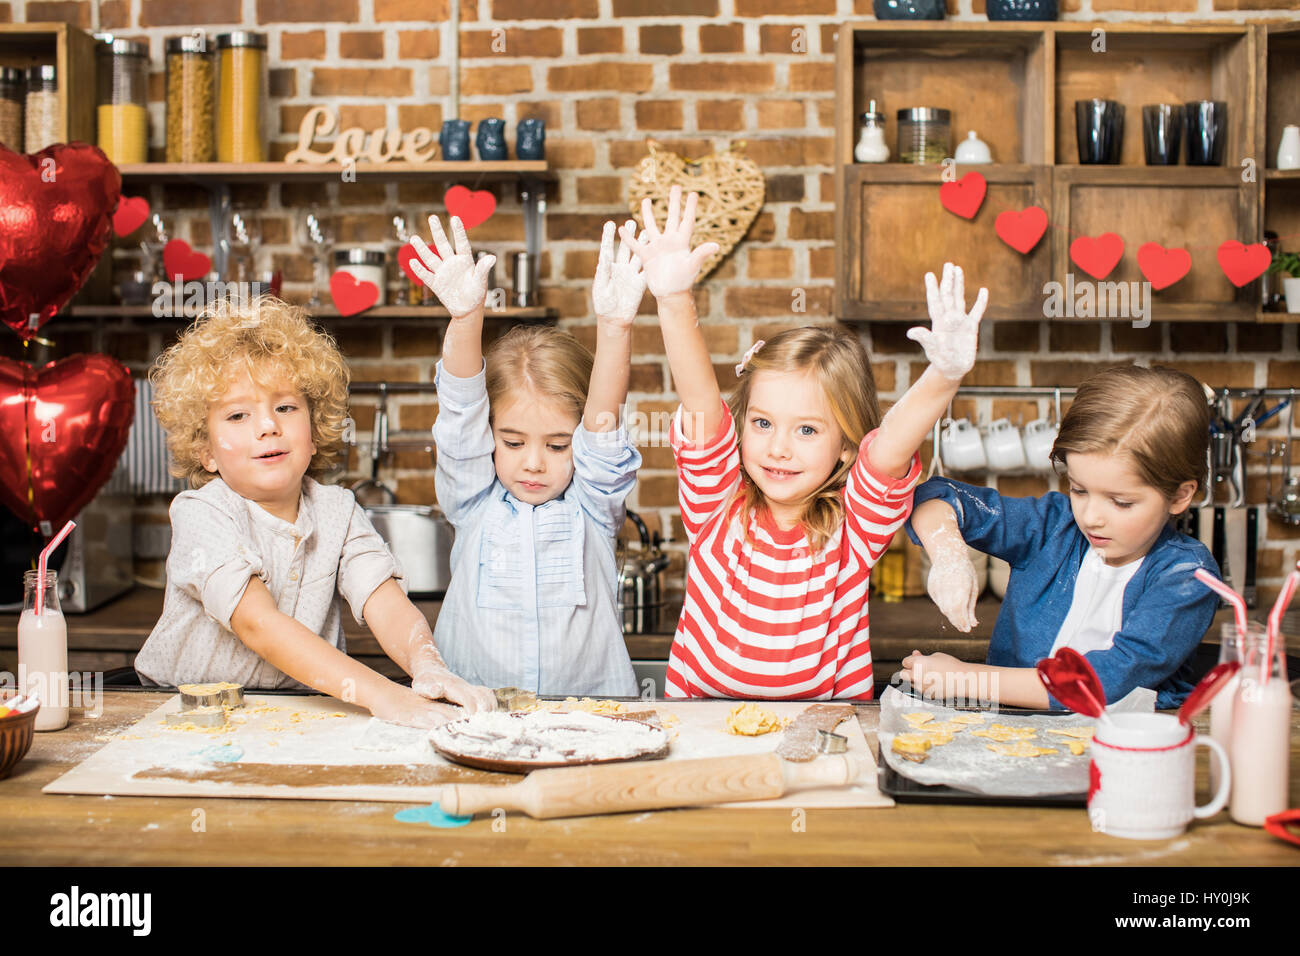 Four cute little children cooking biscuits and showing hands in flour - Stock Image